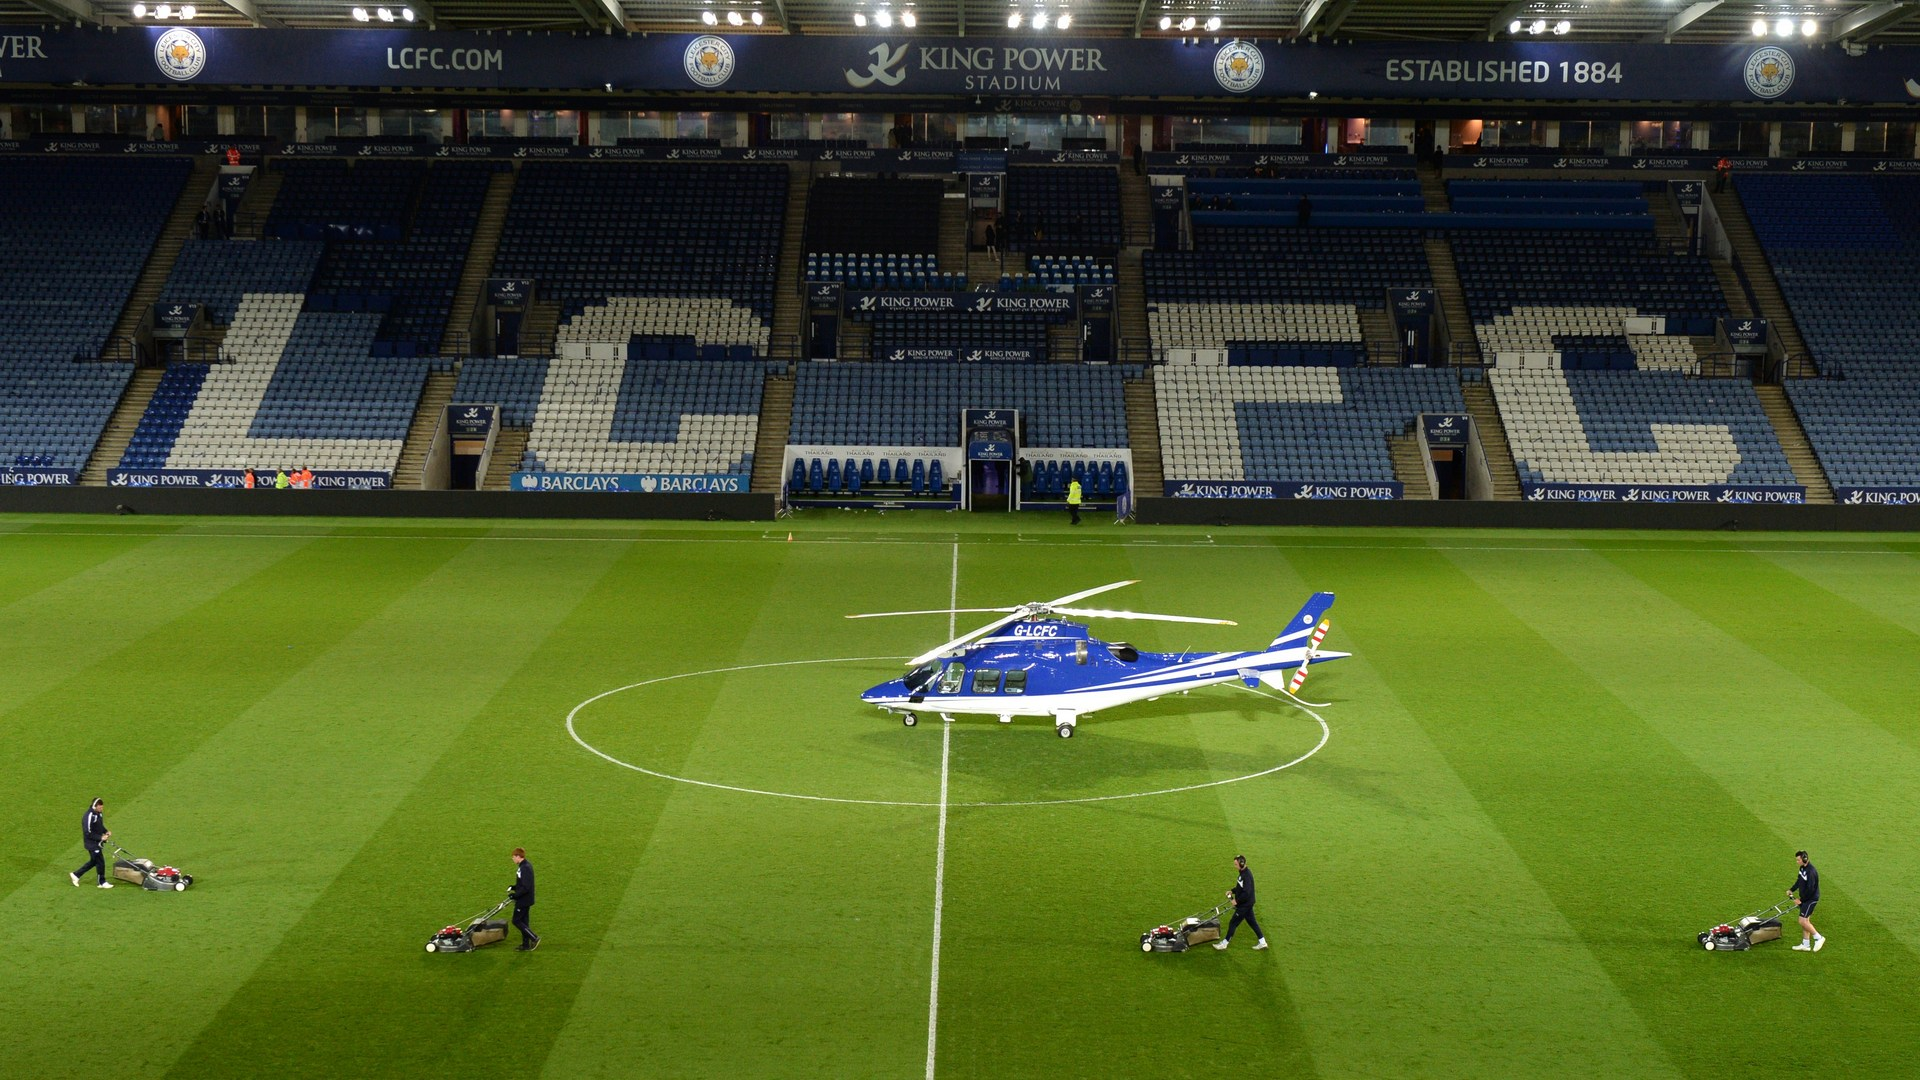 Helicopter belonging to Leicester City chairman crashes outside football stadium